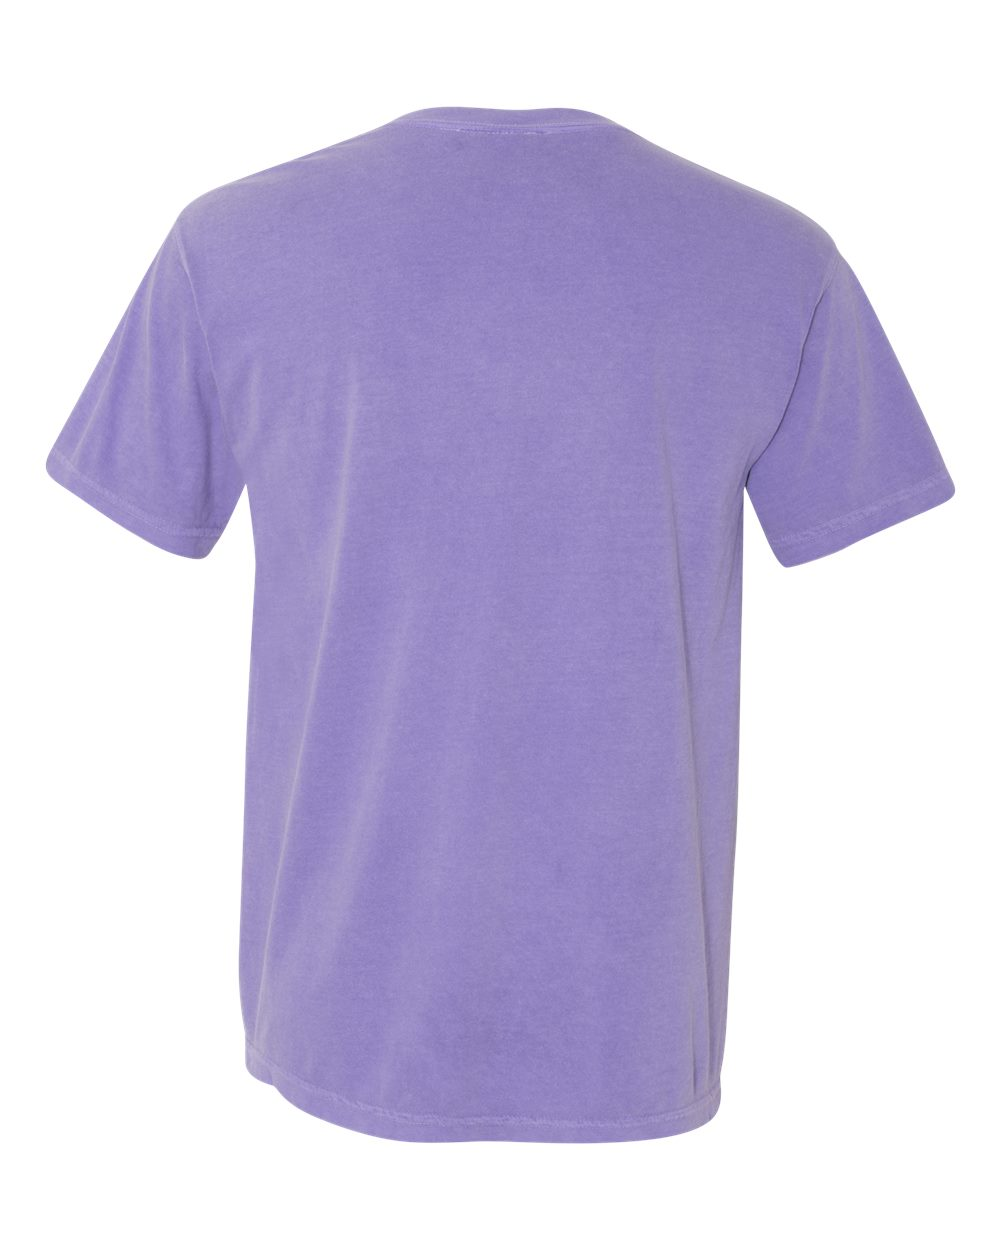 Comfort-Colors-Men-039-s-6-1-oz-Garment-Dyed-Pocket-T-Shirt-6030CC-S-3XL thumbnail 76